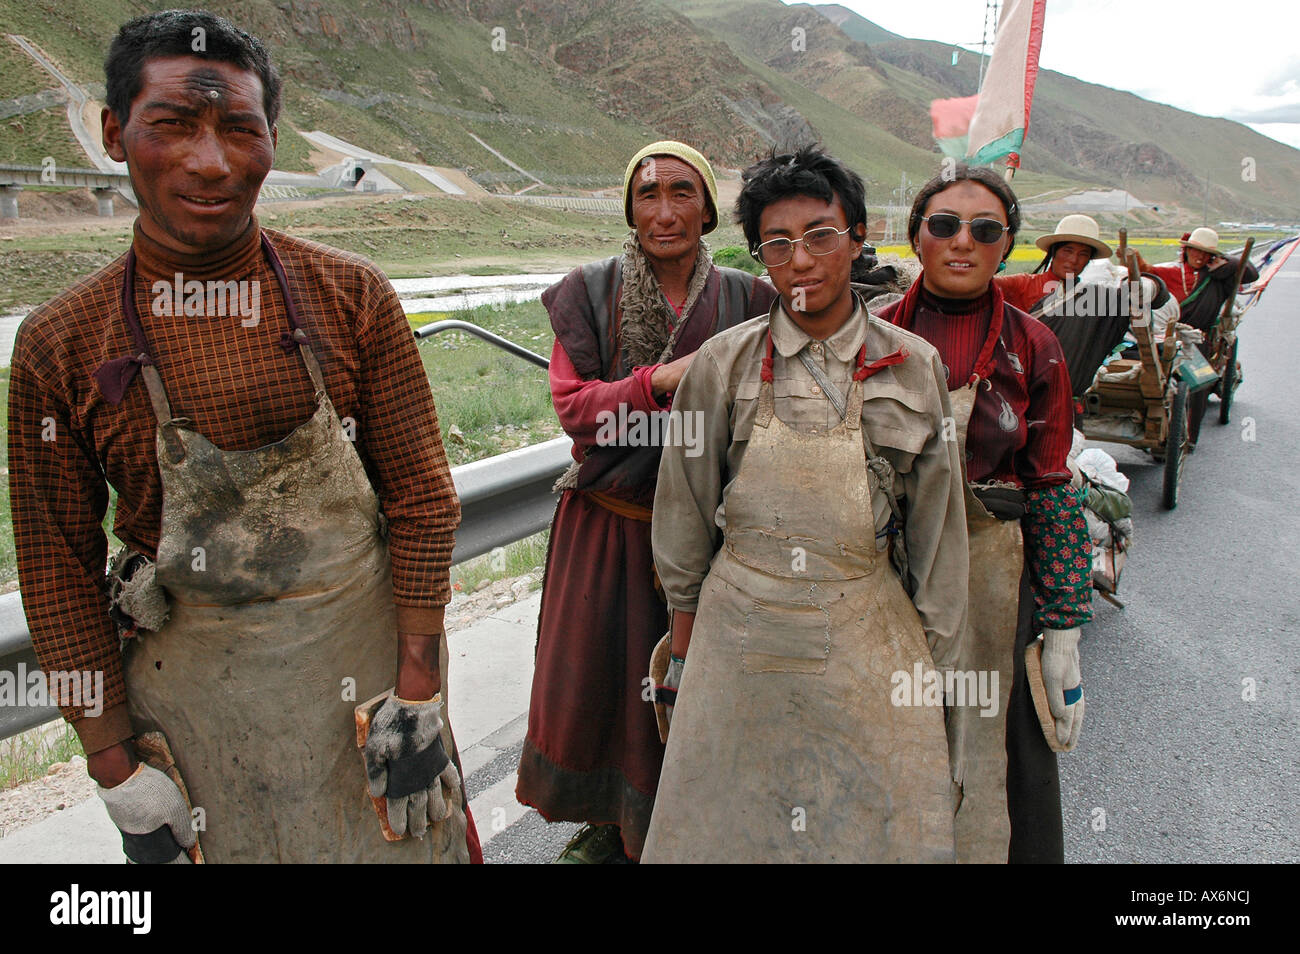 Nomad pilgrims en route to Lhasa from Nagchu in northern Tibet. The Tibet railway passes by in the background. Tibet - Stock Image